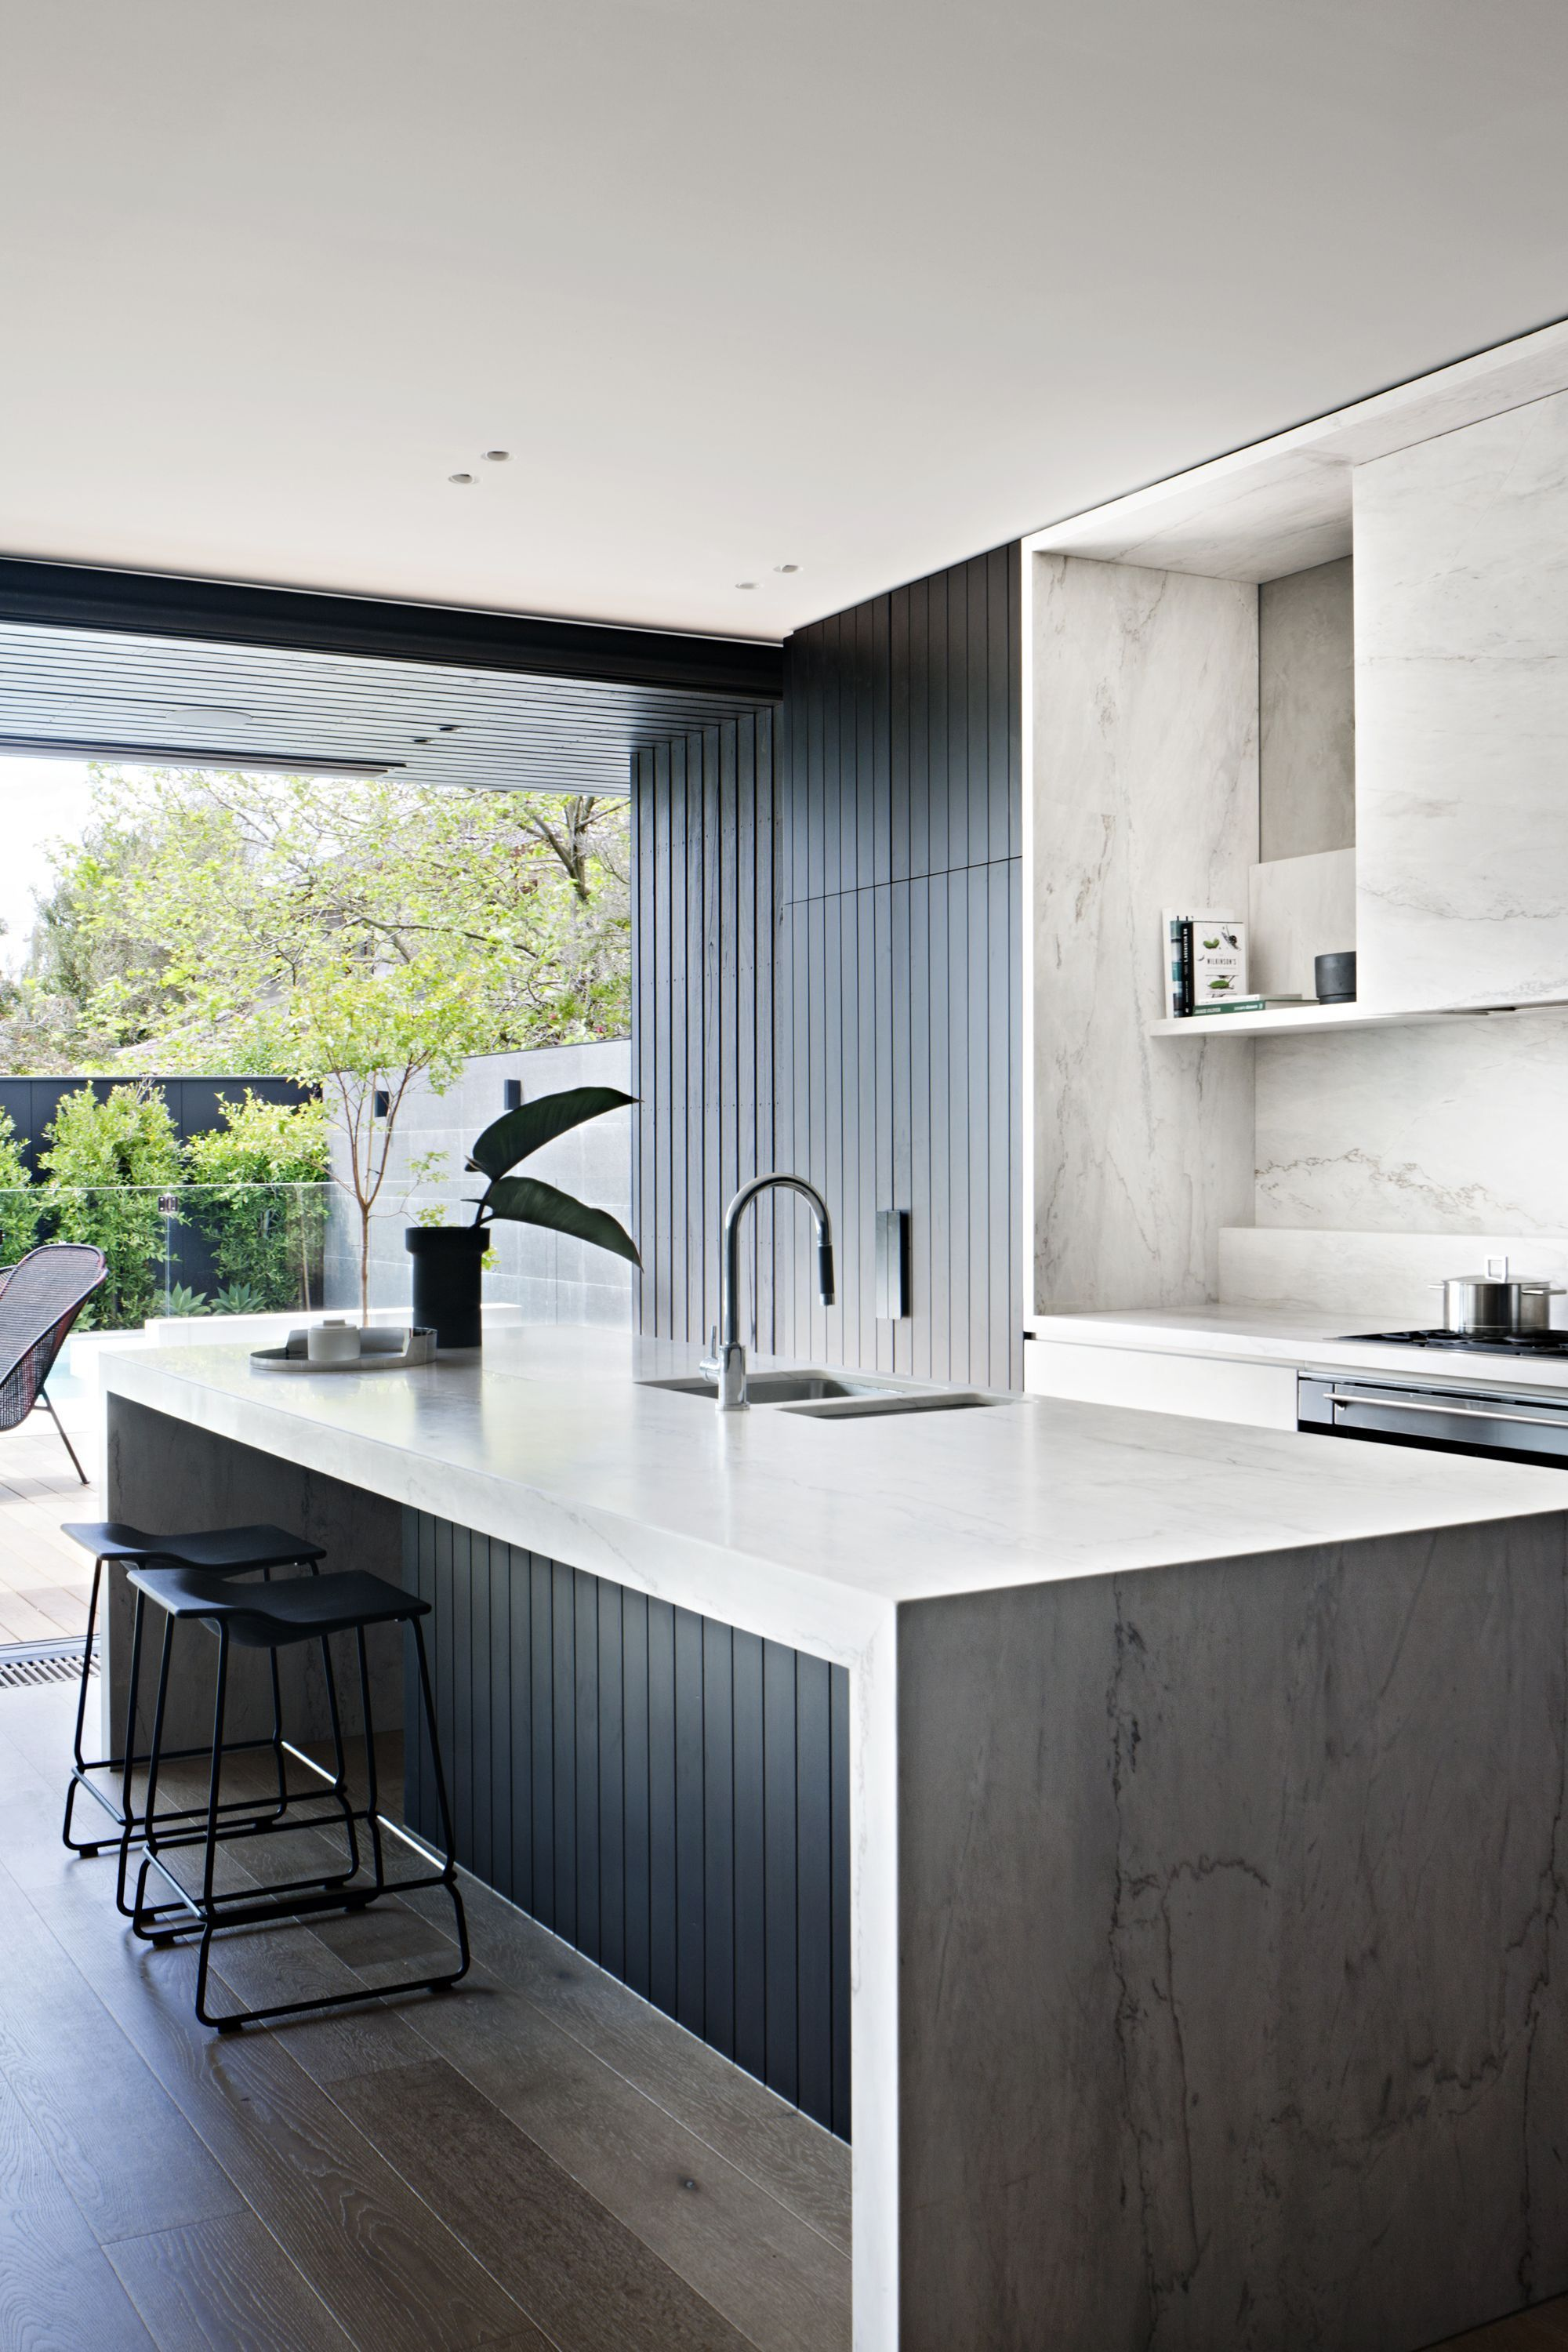 Contemporary Kitchen Design Benefits And Types Of Kitchen Style With Images Kitchen Inspiration Design Contemporary Kitchen Design Modern Kitchen Design